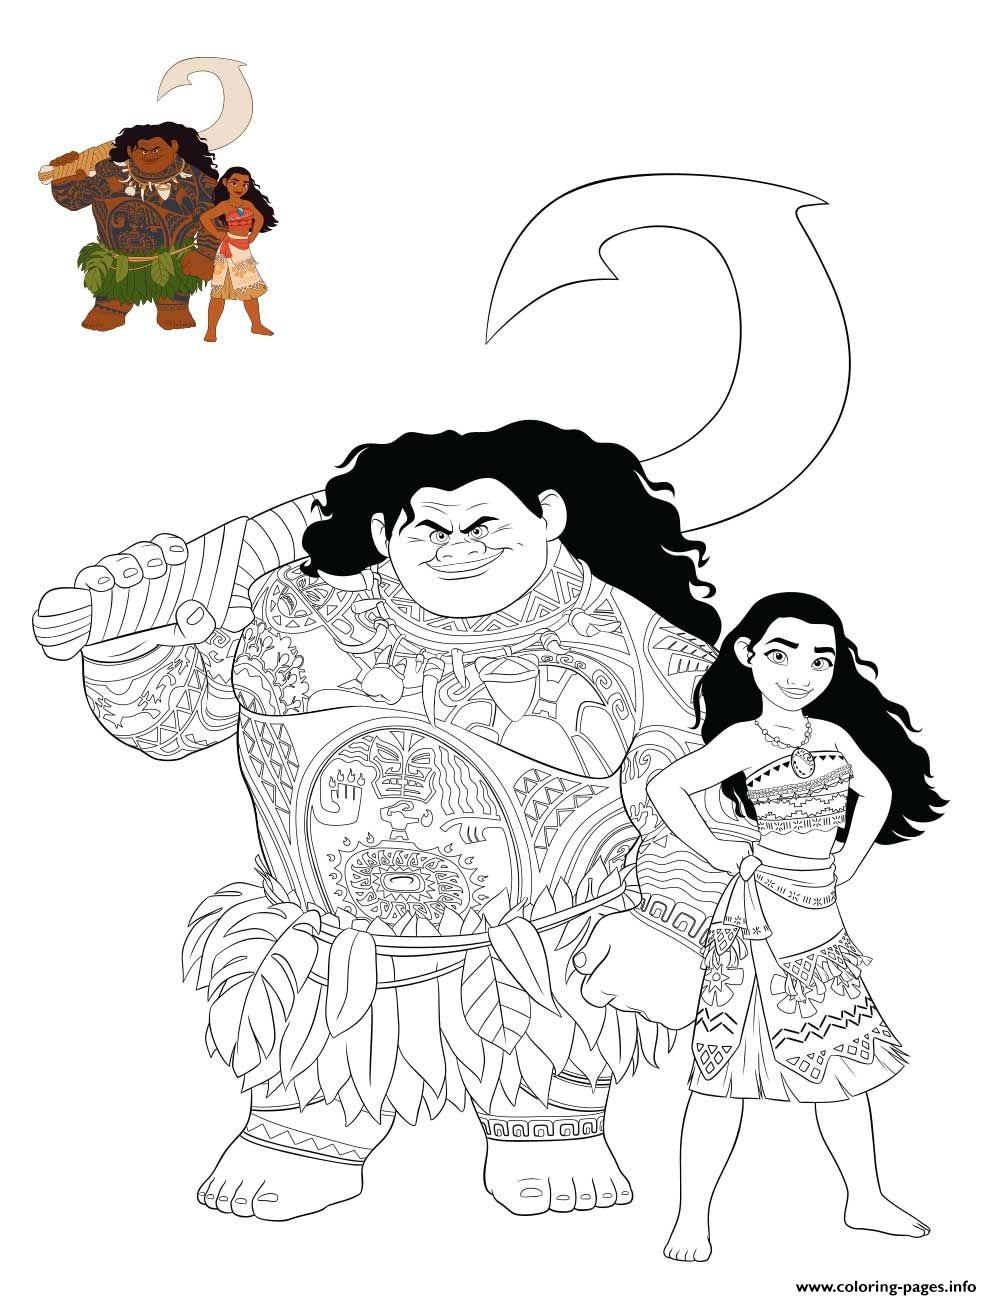 graphic relating to Printable Moana titled Moana And Maui Shade Coloring Internet pages Printable